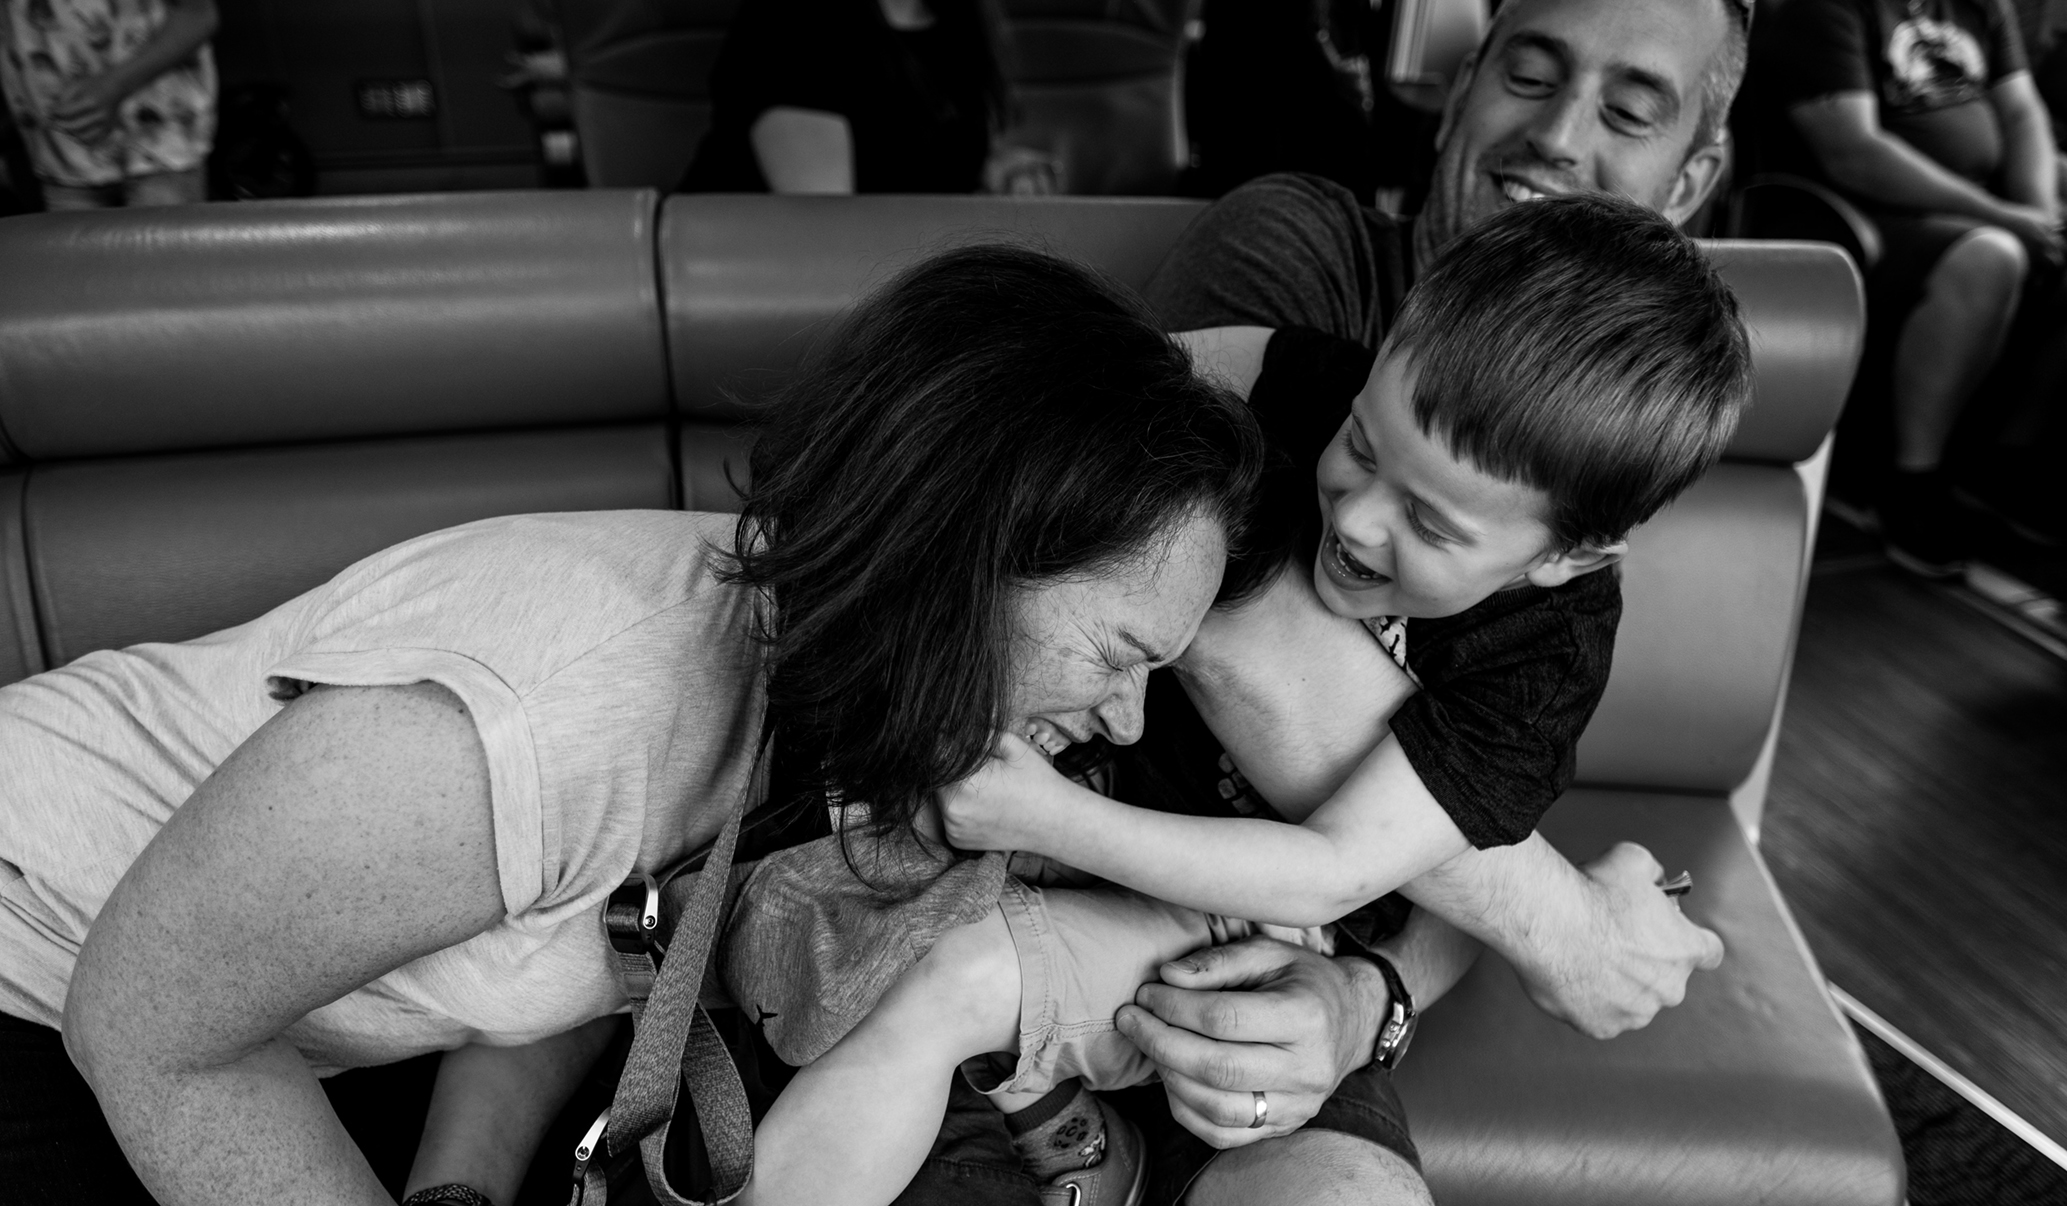 boy pulling mom's head towards him while on aa boat ride on the Thames during a documentary family photoshoot